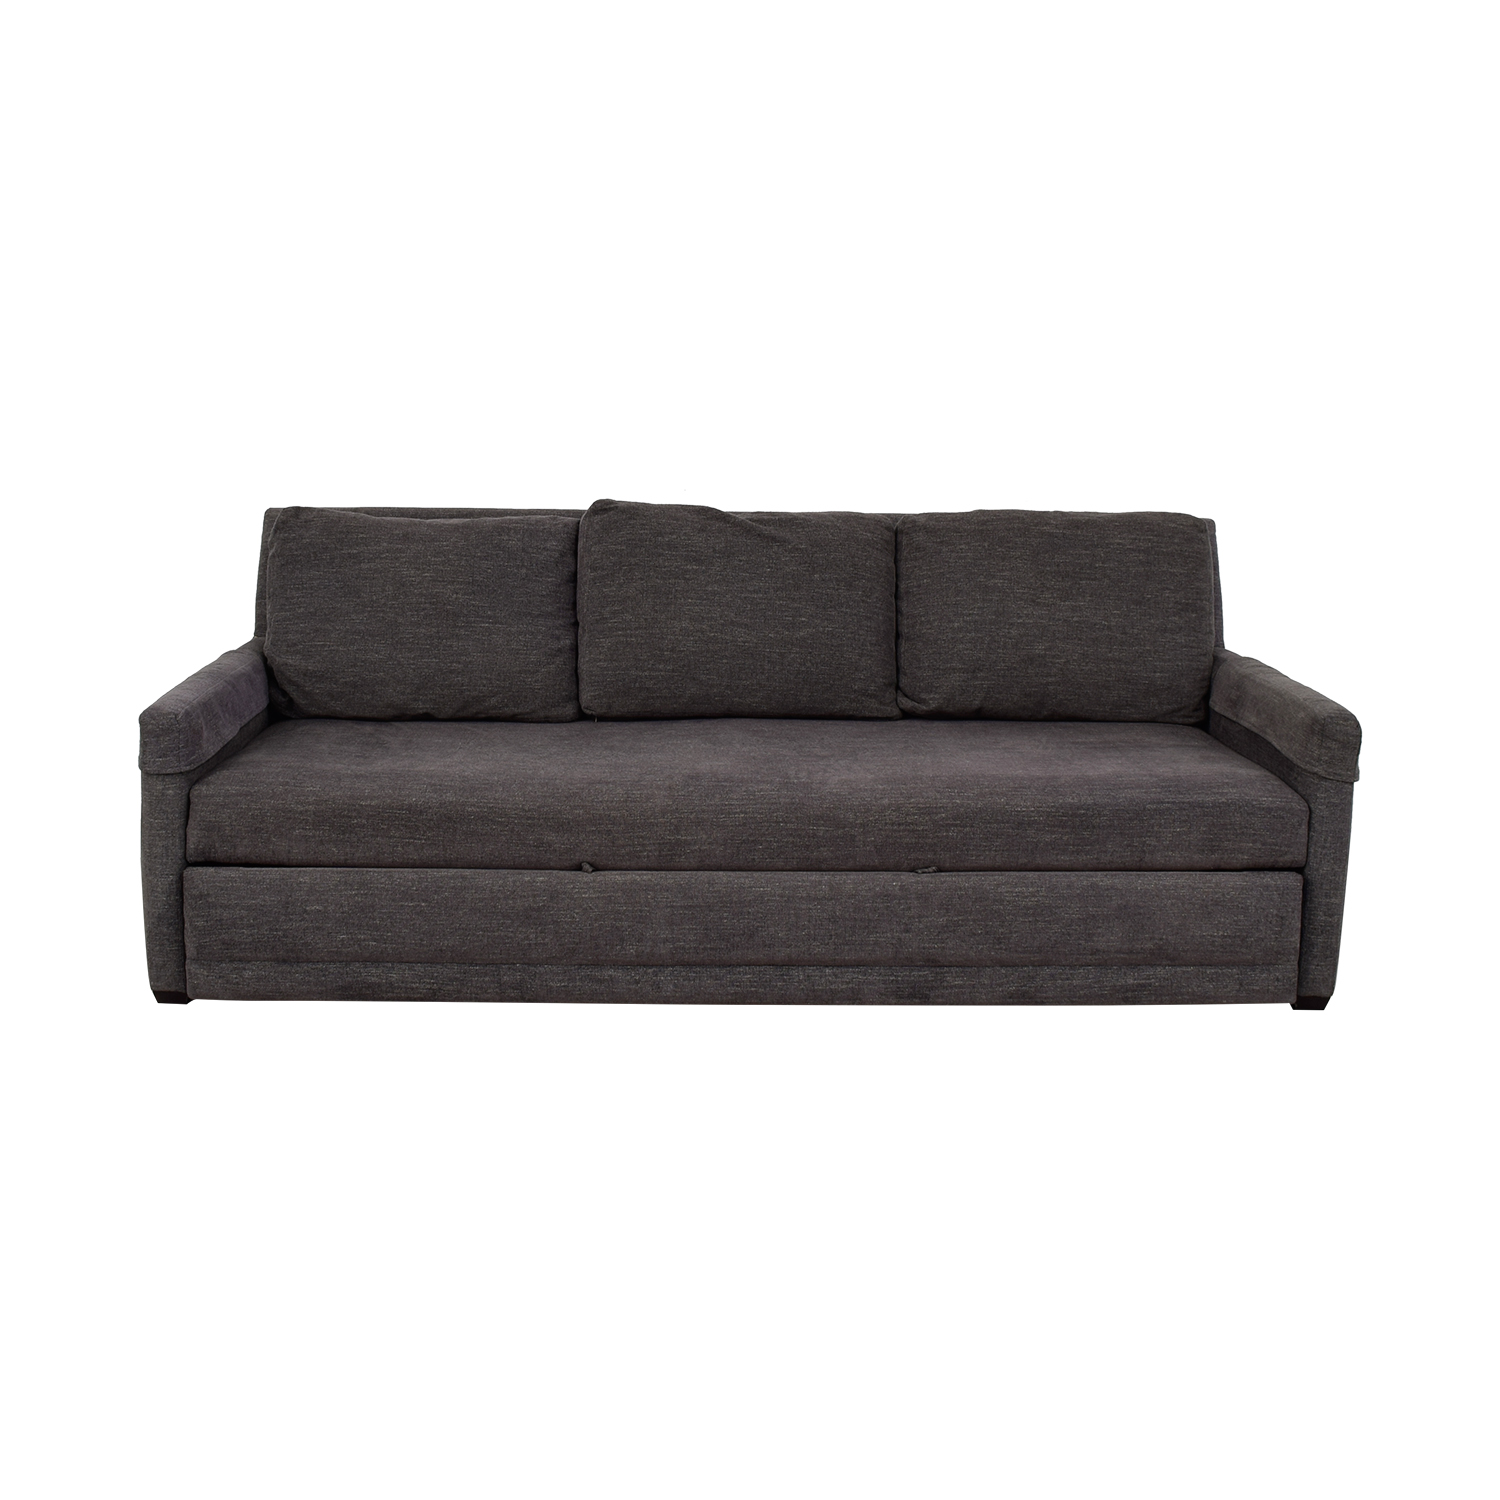 Crate & Barrel Reston Grey Queen Trundle Sleeper Sofabed sale